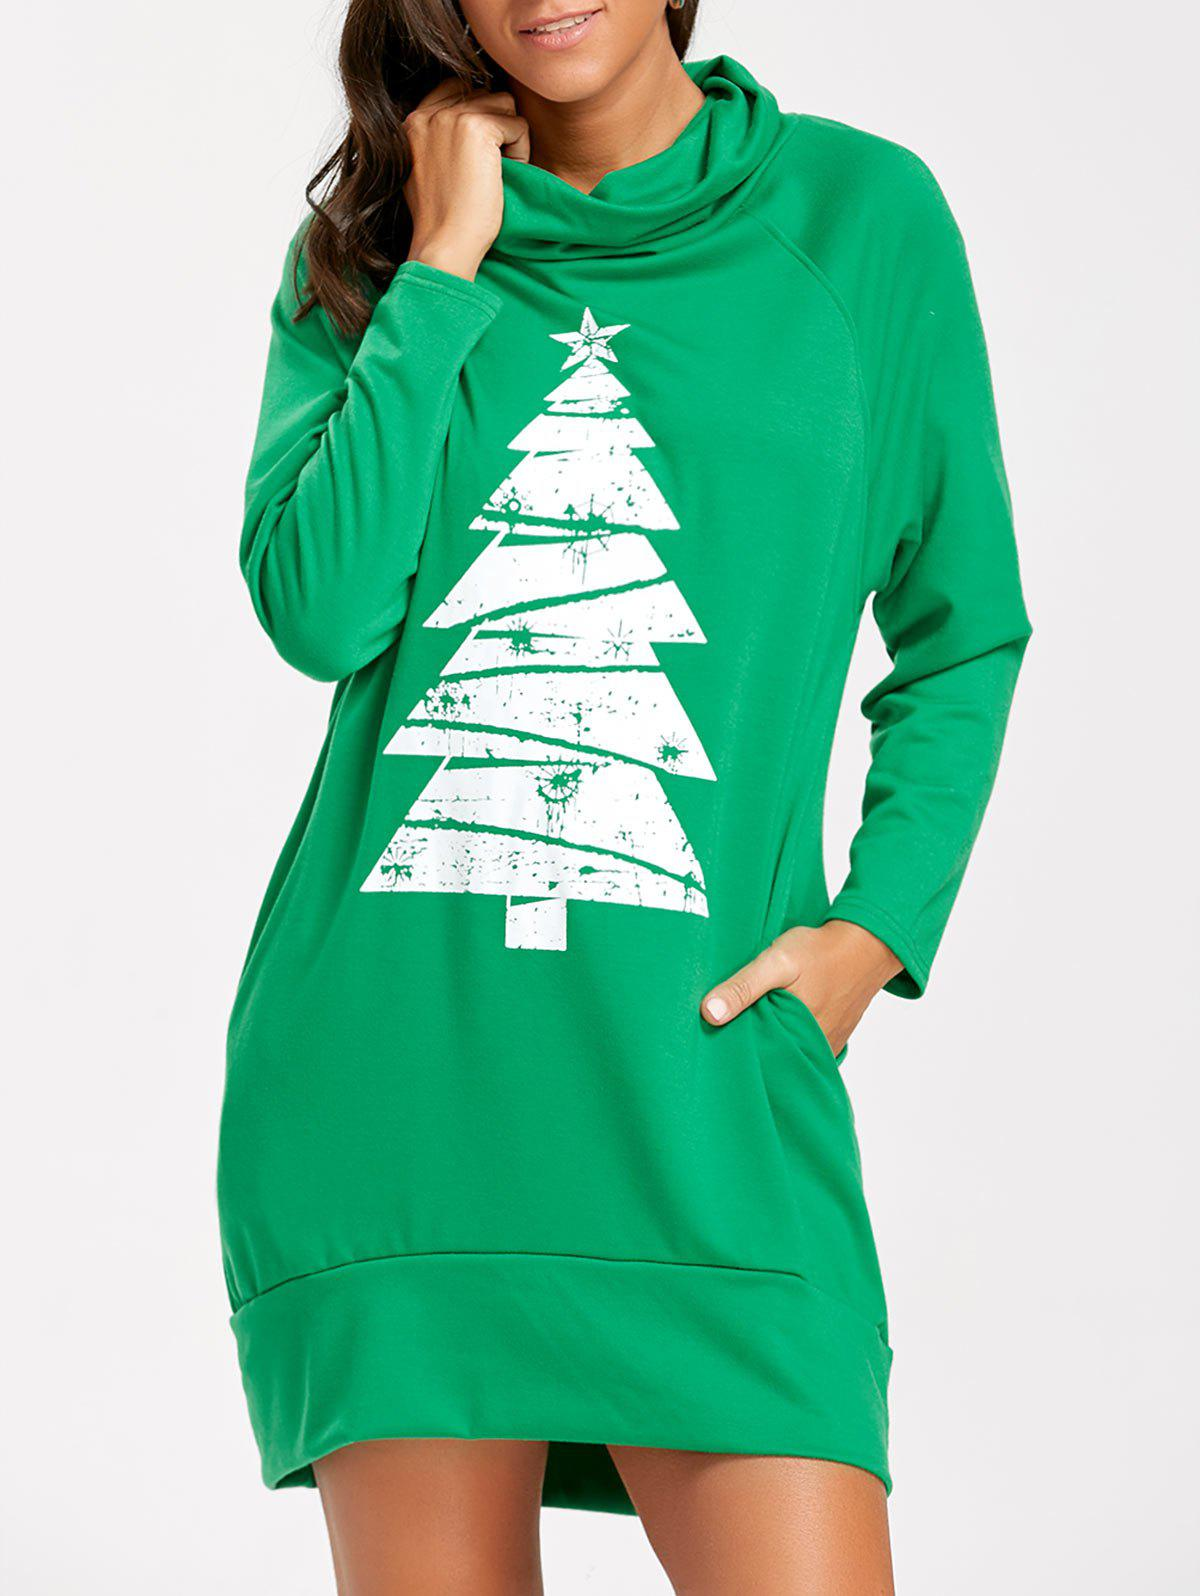 Sale Raglan Sleeve Cowl Neck Christmas Sweatshirt Dress